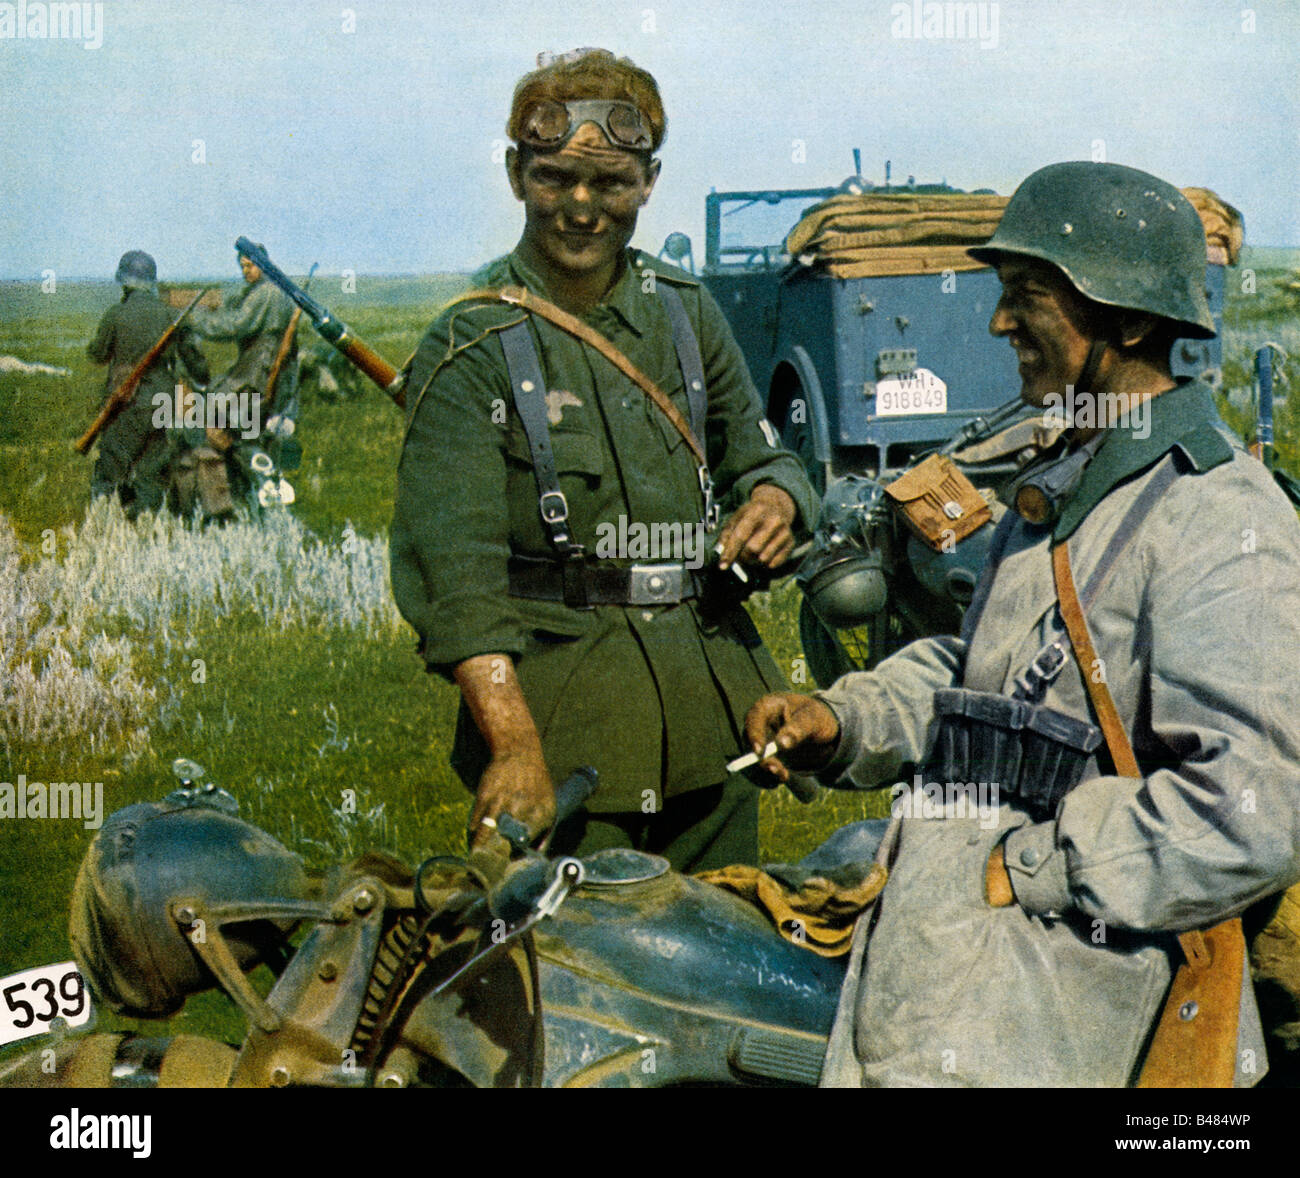 Wehrmacht Cigarette Break German motorcycle messengers on the Eastern Front in the Russian campaign in WW II - Stock Image